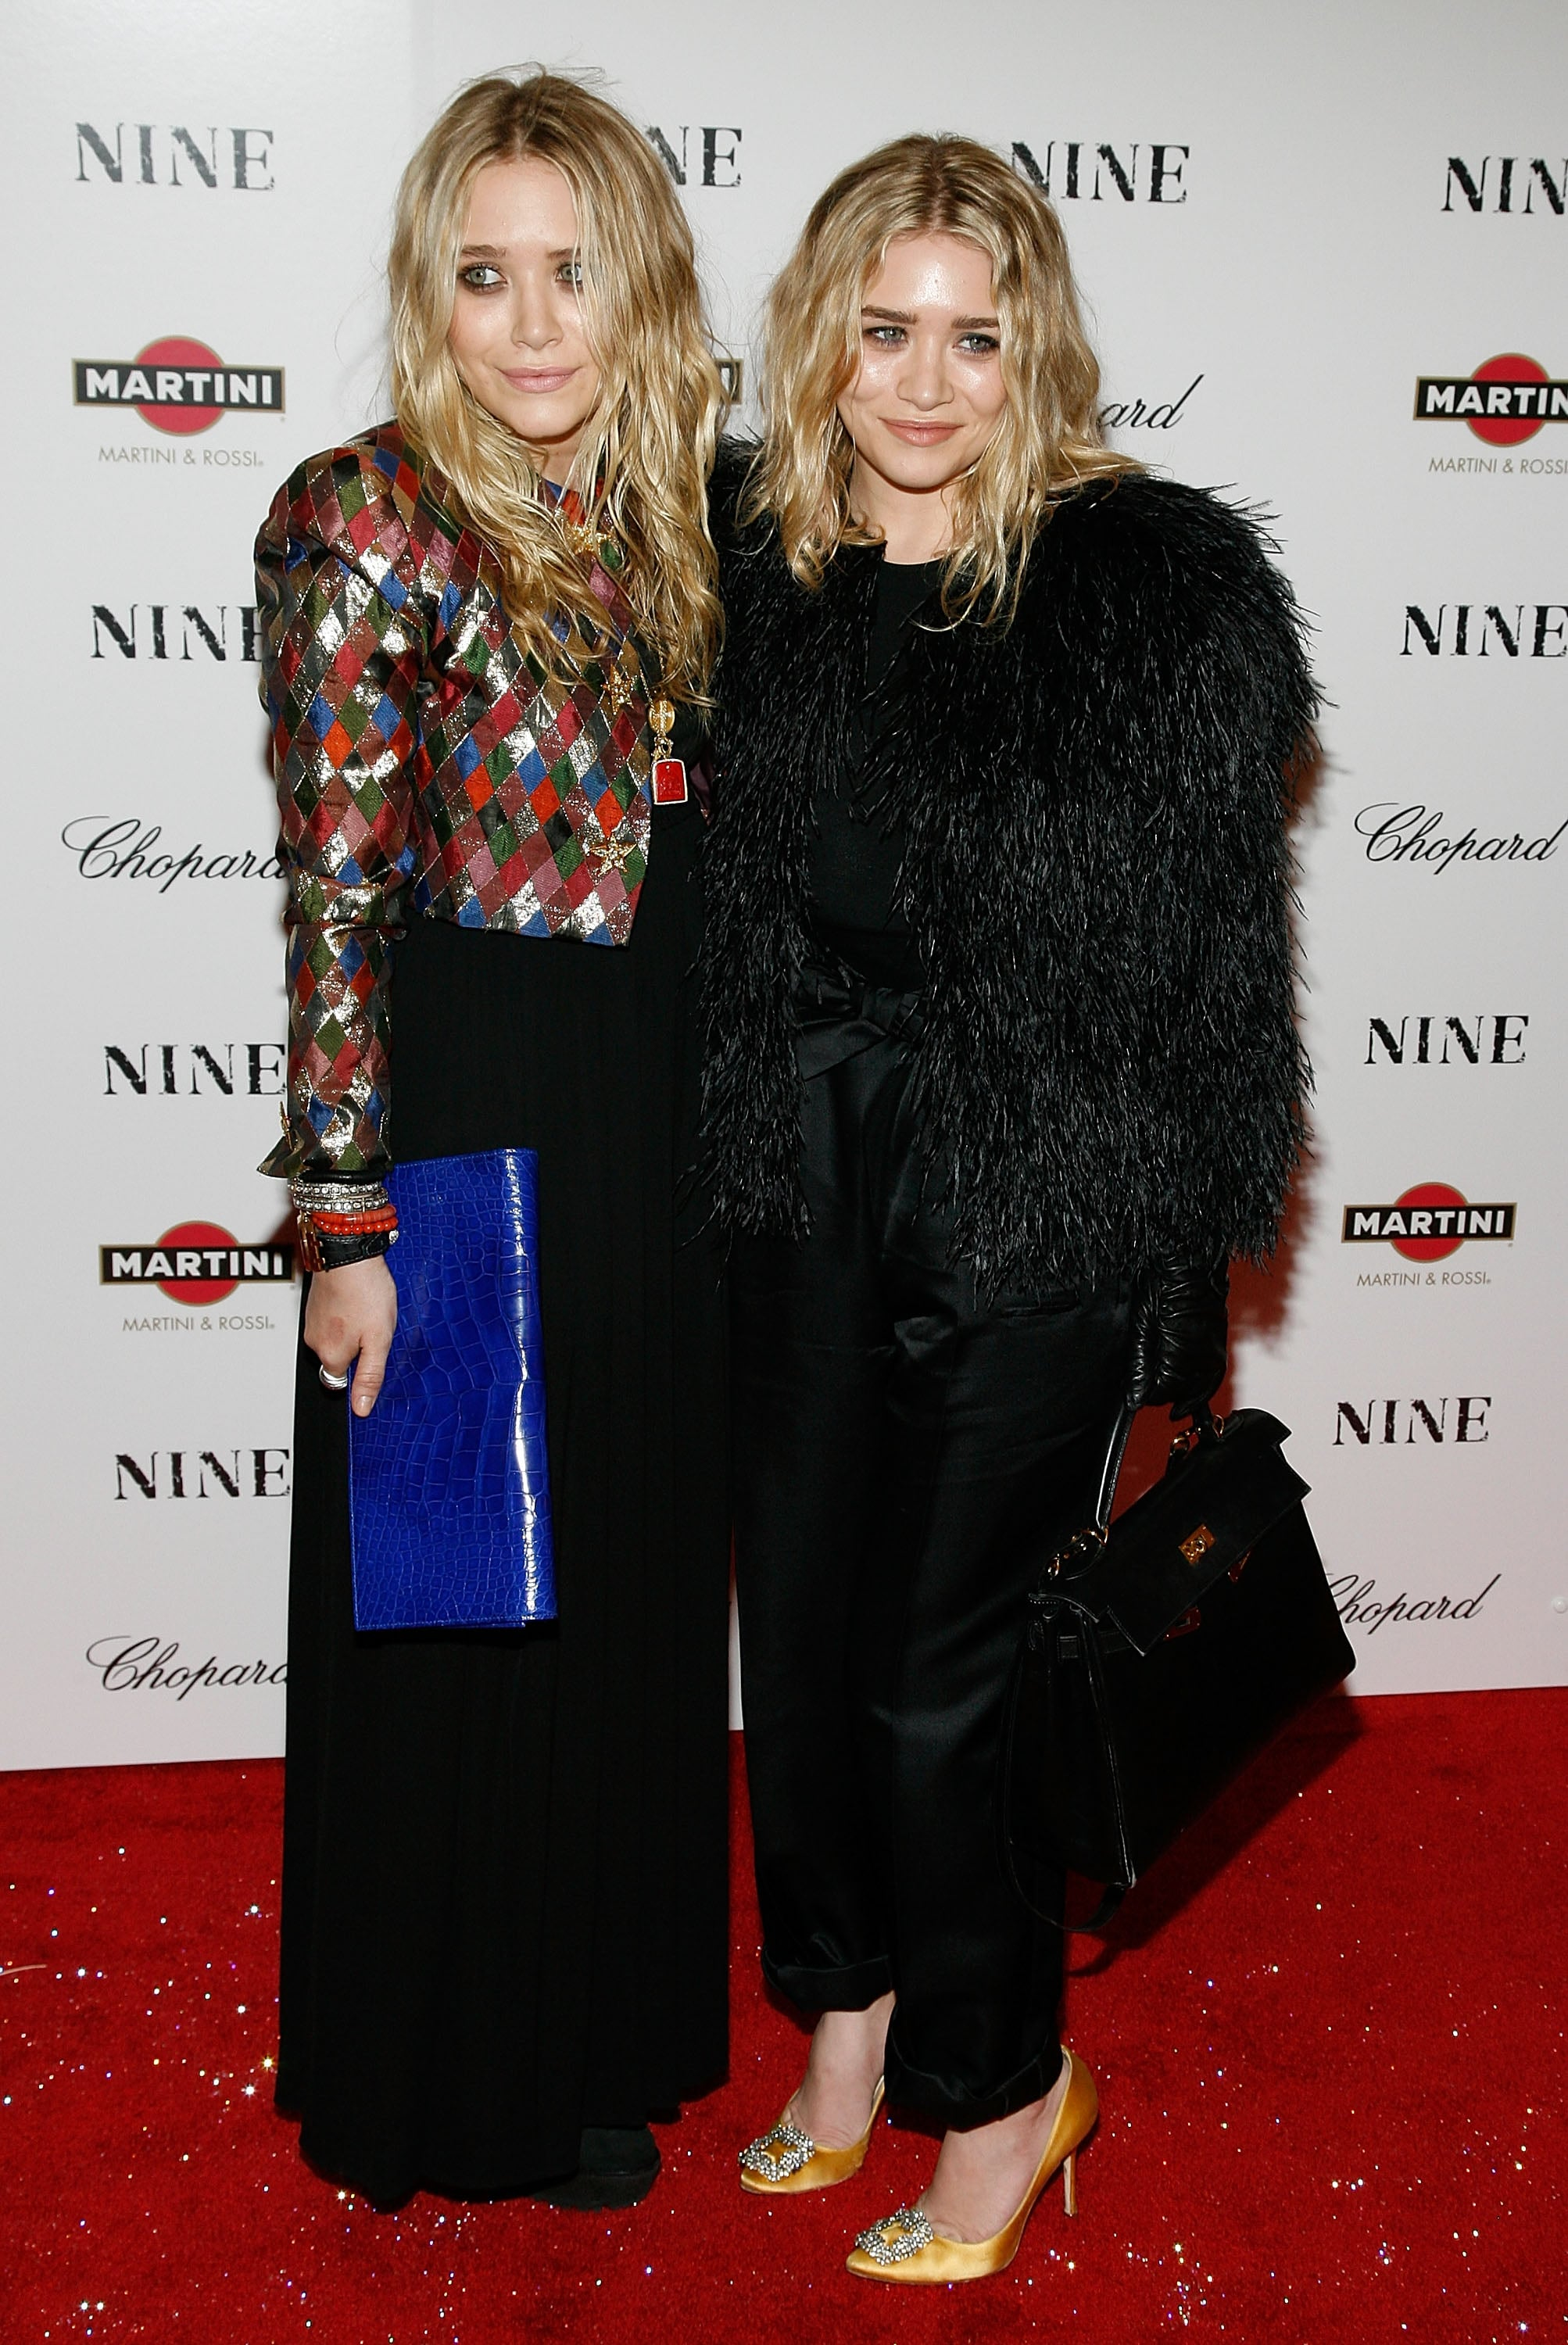 Twinning combo: Both girls wore eye-catching jackets and no-fuss beach waves for Nine's New York premiere in December 2009.   Mary-Kate brought major spunk in a shimmering harlequin jacket and cobalt leather clutch. Ashley proved all-black is anything but boring in a cropped feathered jacket, silk trousers, and slick leather gloves.